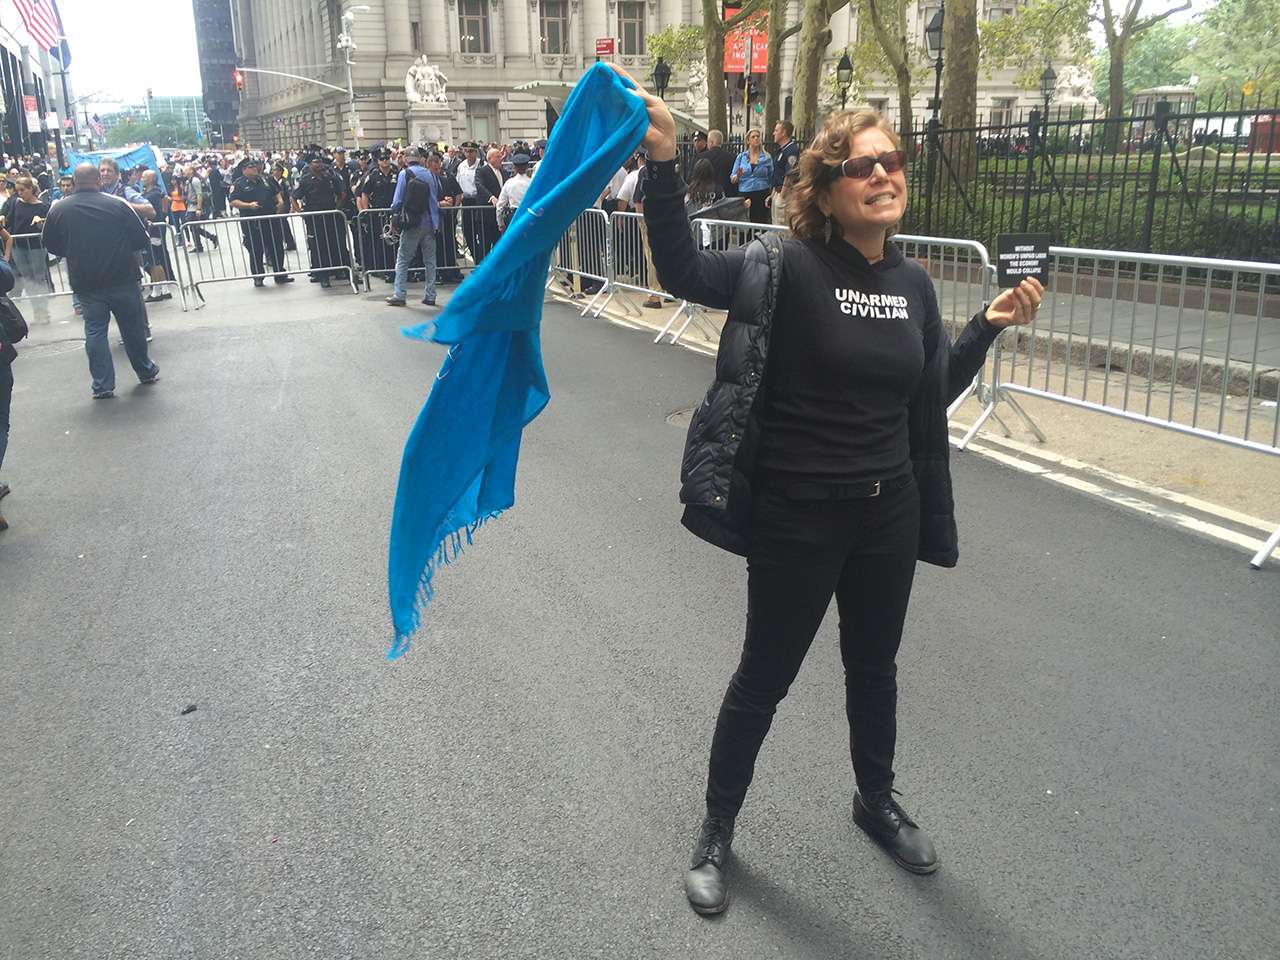 A protester (photo by Hrag Vartanian/Hyperallergic)